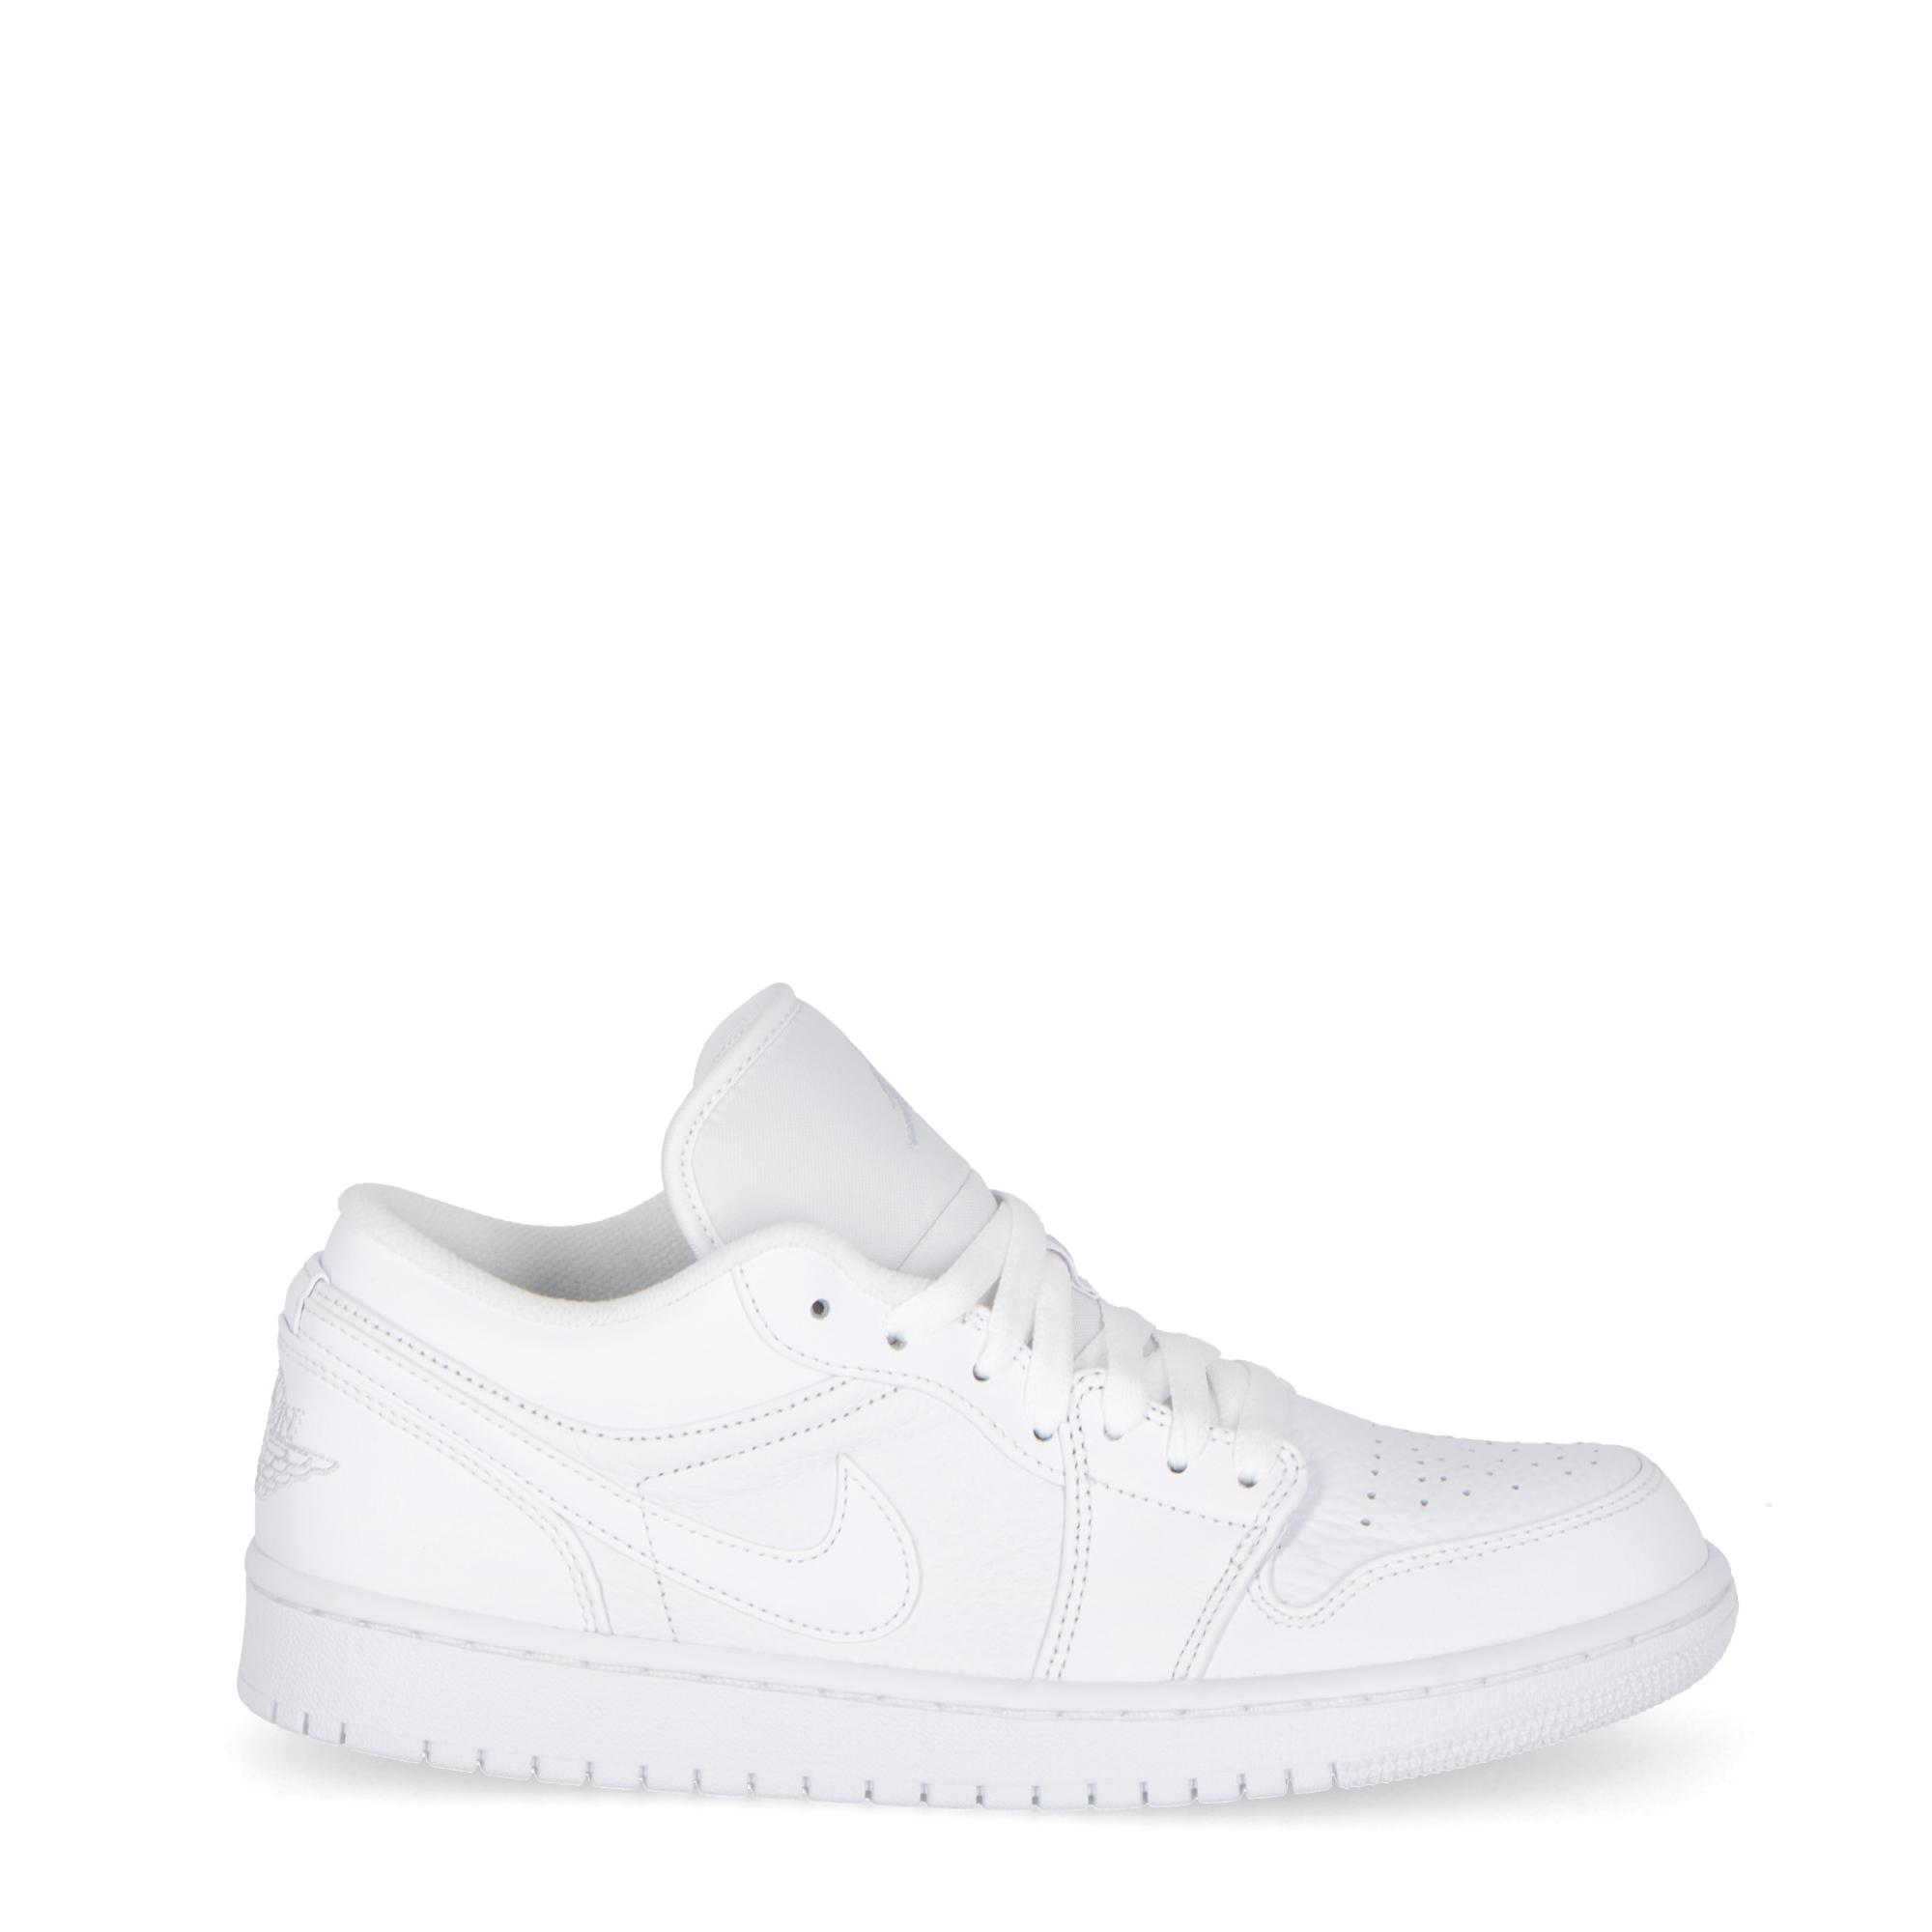 best website c0f52 3a35c Nike Air Jordan 1 Low White white white